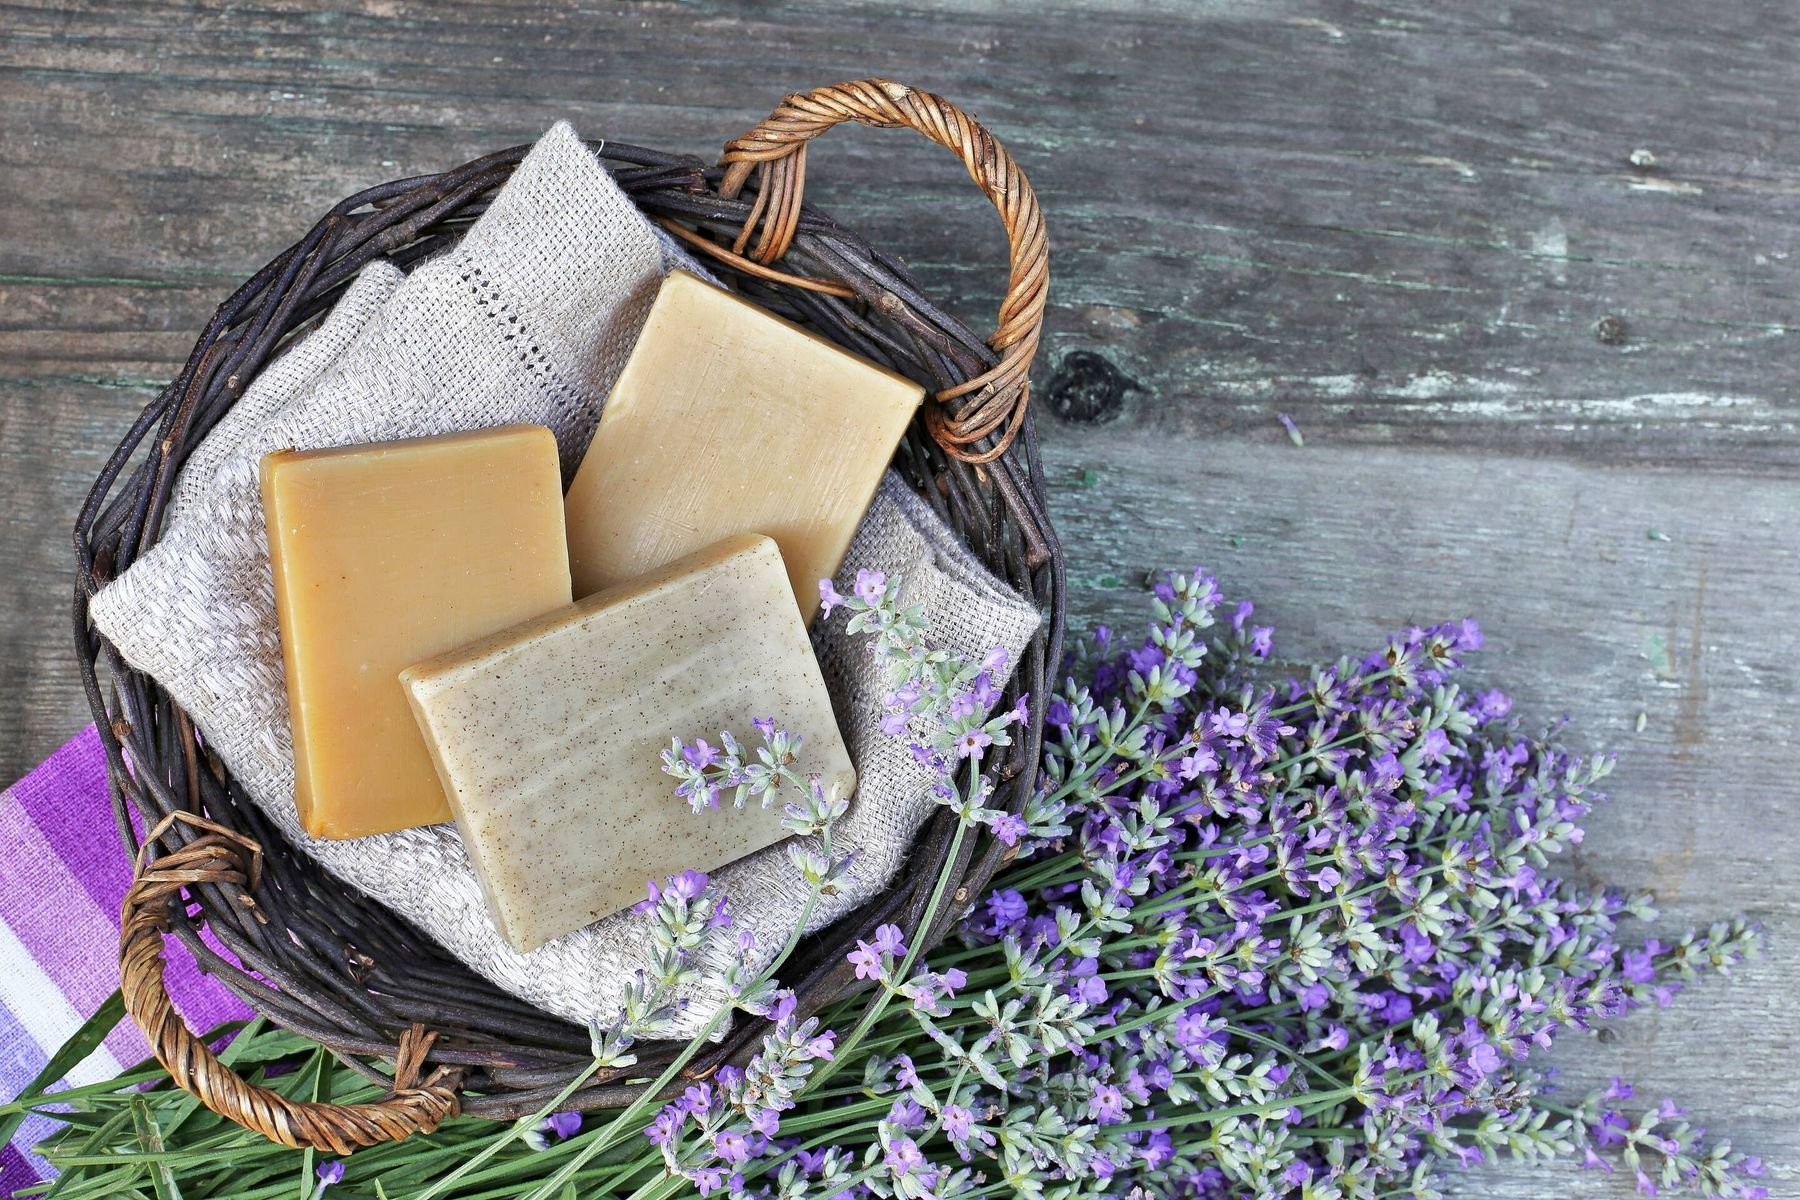 An Easy Way to Make Eco-Friendly Soap at Home